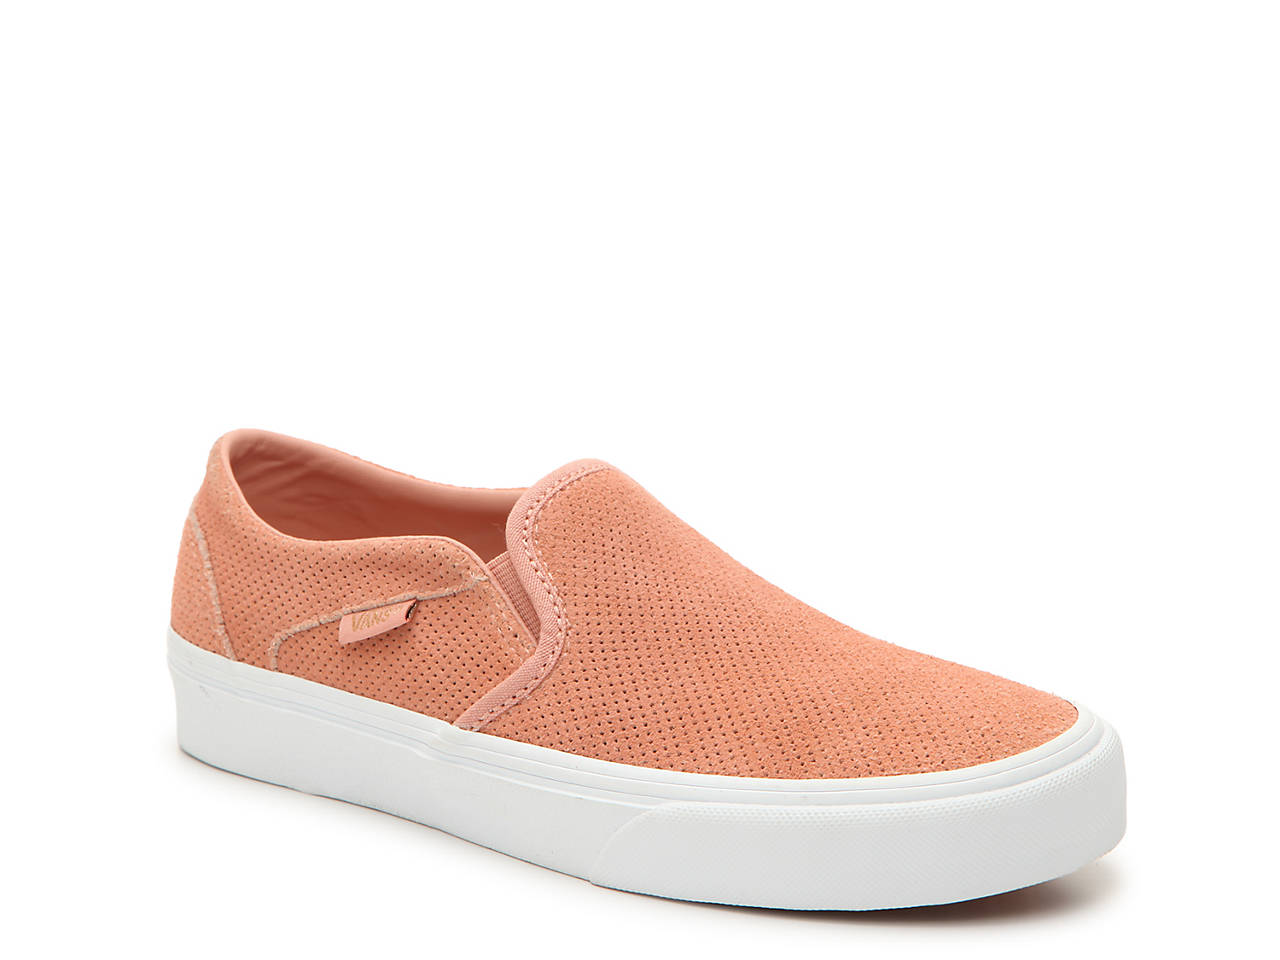 5fc9d689c2c Vans Asher Slip-On Sneaker - Women s Women s Shoes